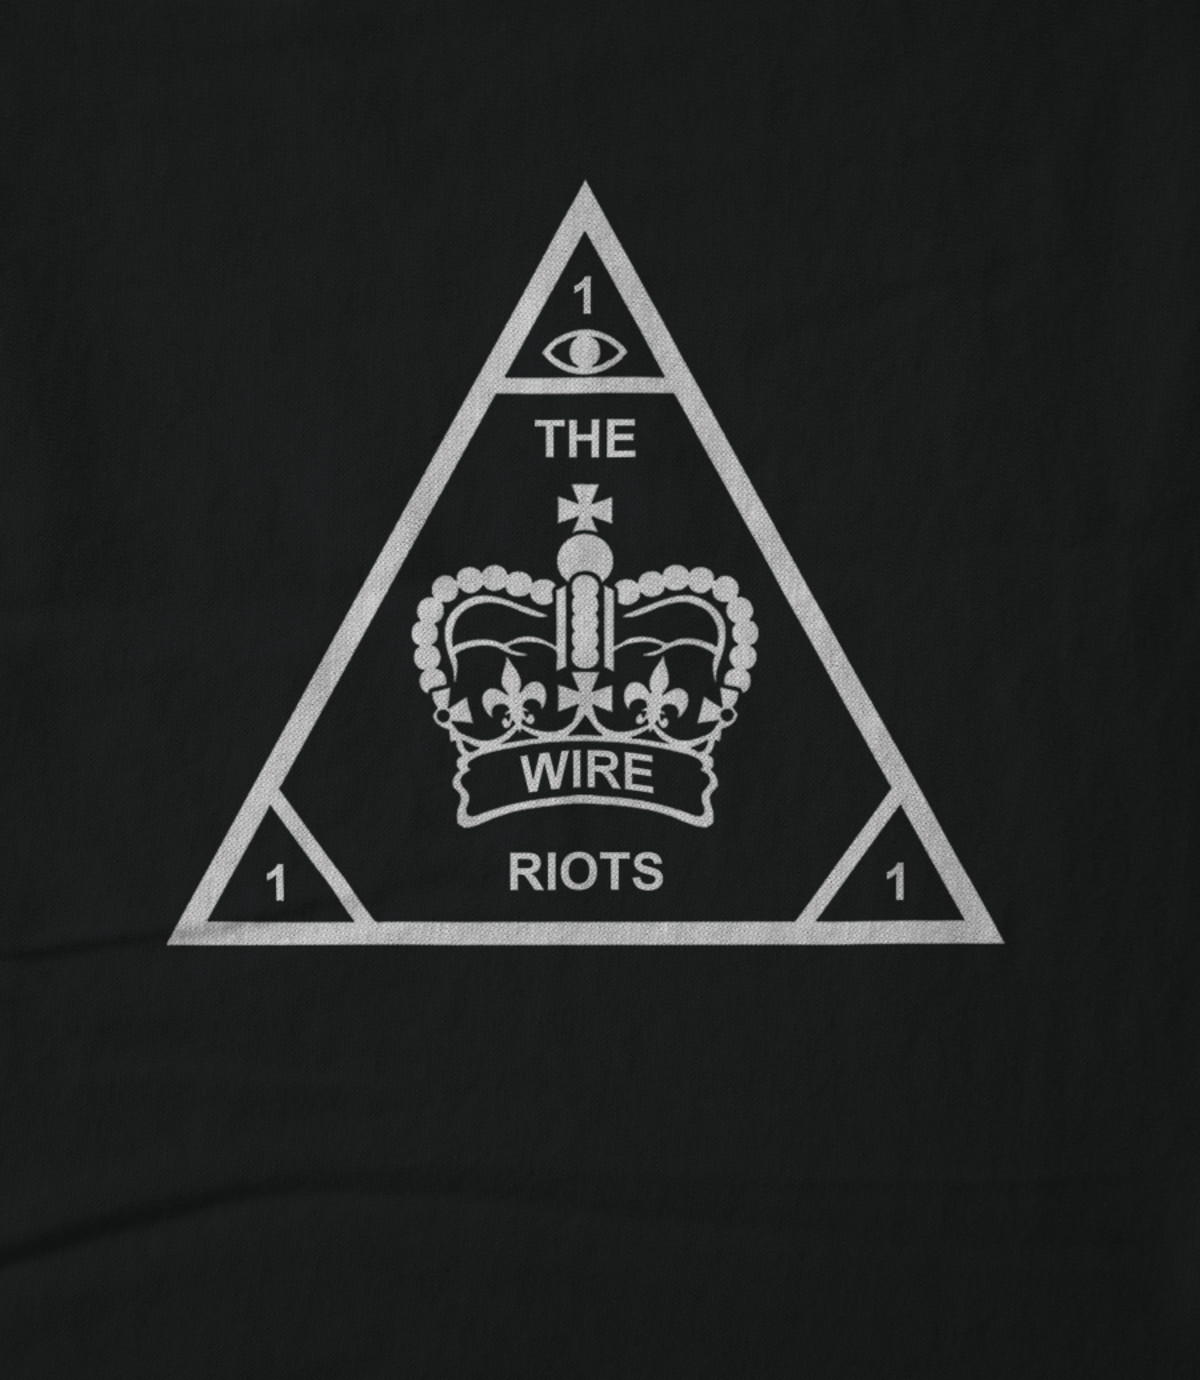 The wire riots  twr 111 1520381377